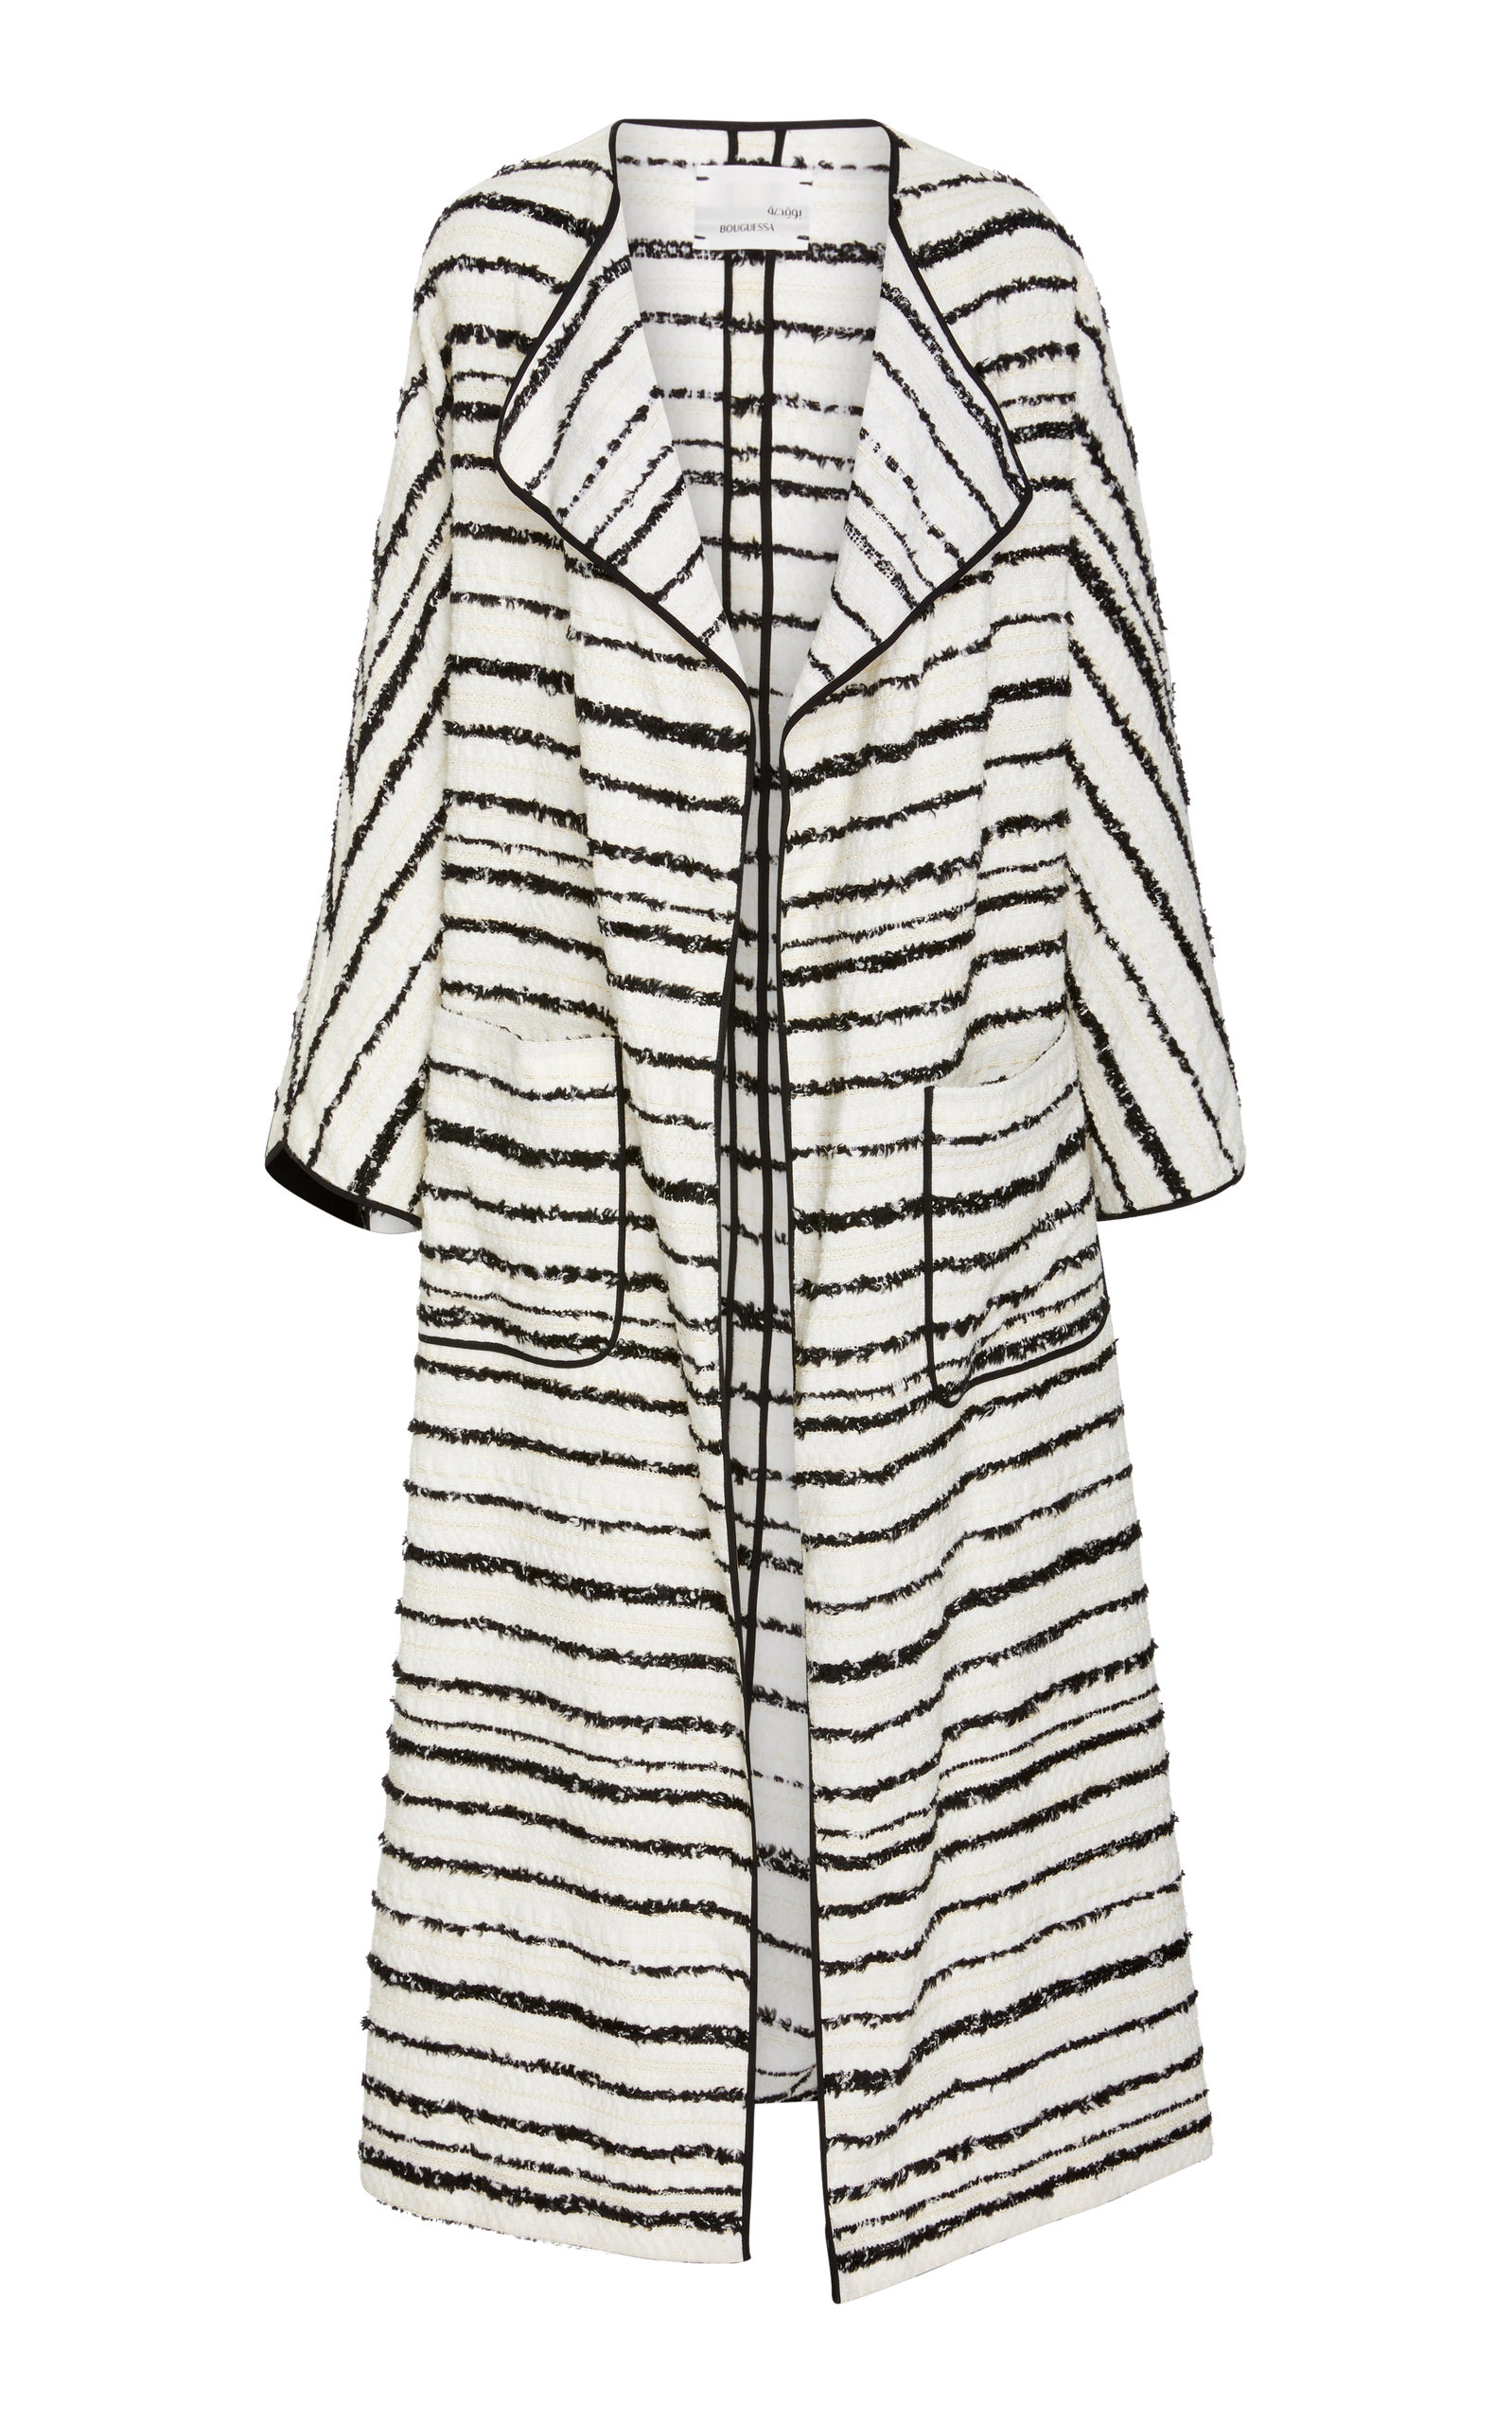 BOUGUESSA Tweed Striped Long Cardigan in Black/White